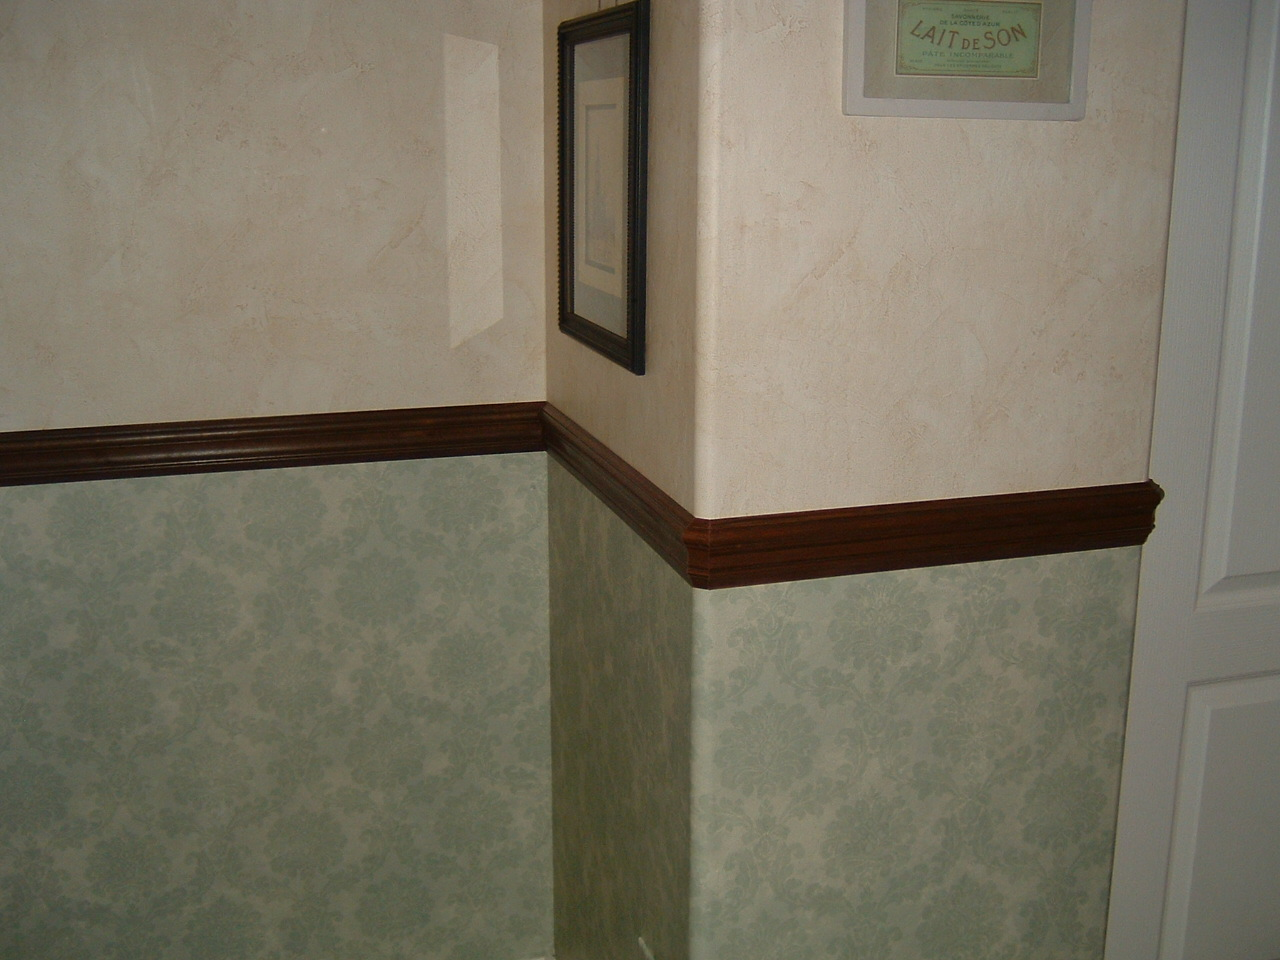 Chair Rail Gallery Experts In Crown Moulding Wainscot Beadboard